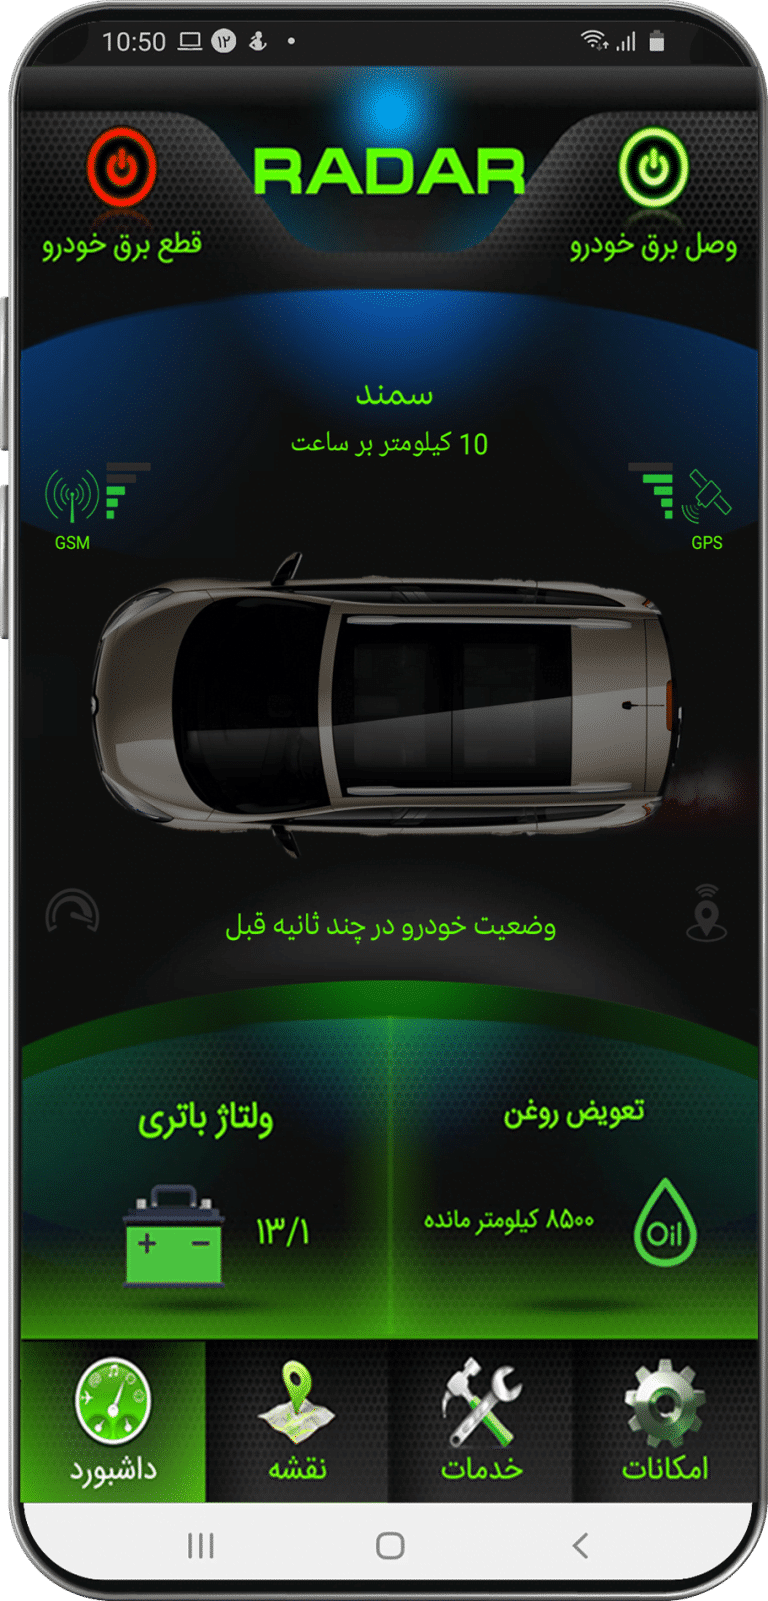 Car-tracker-application-radargps.org